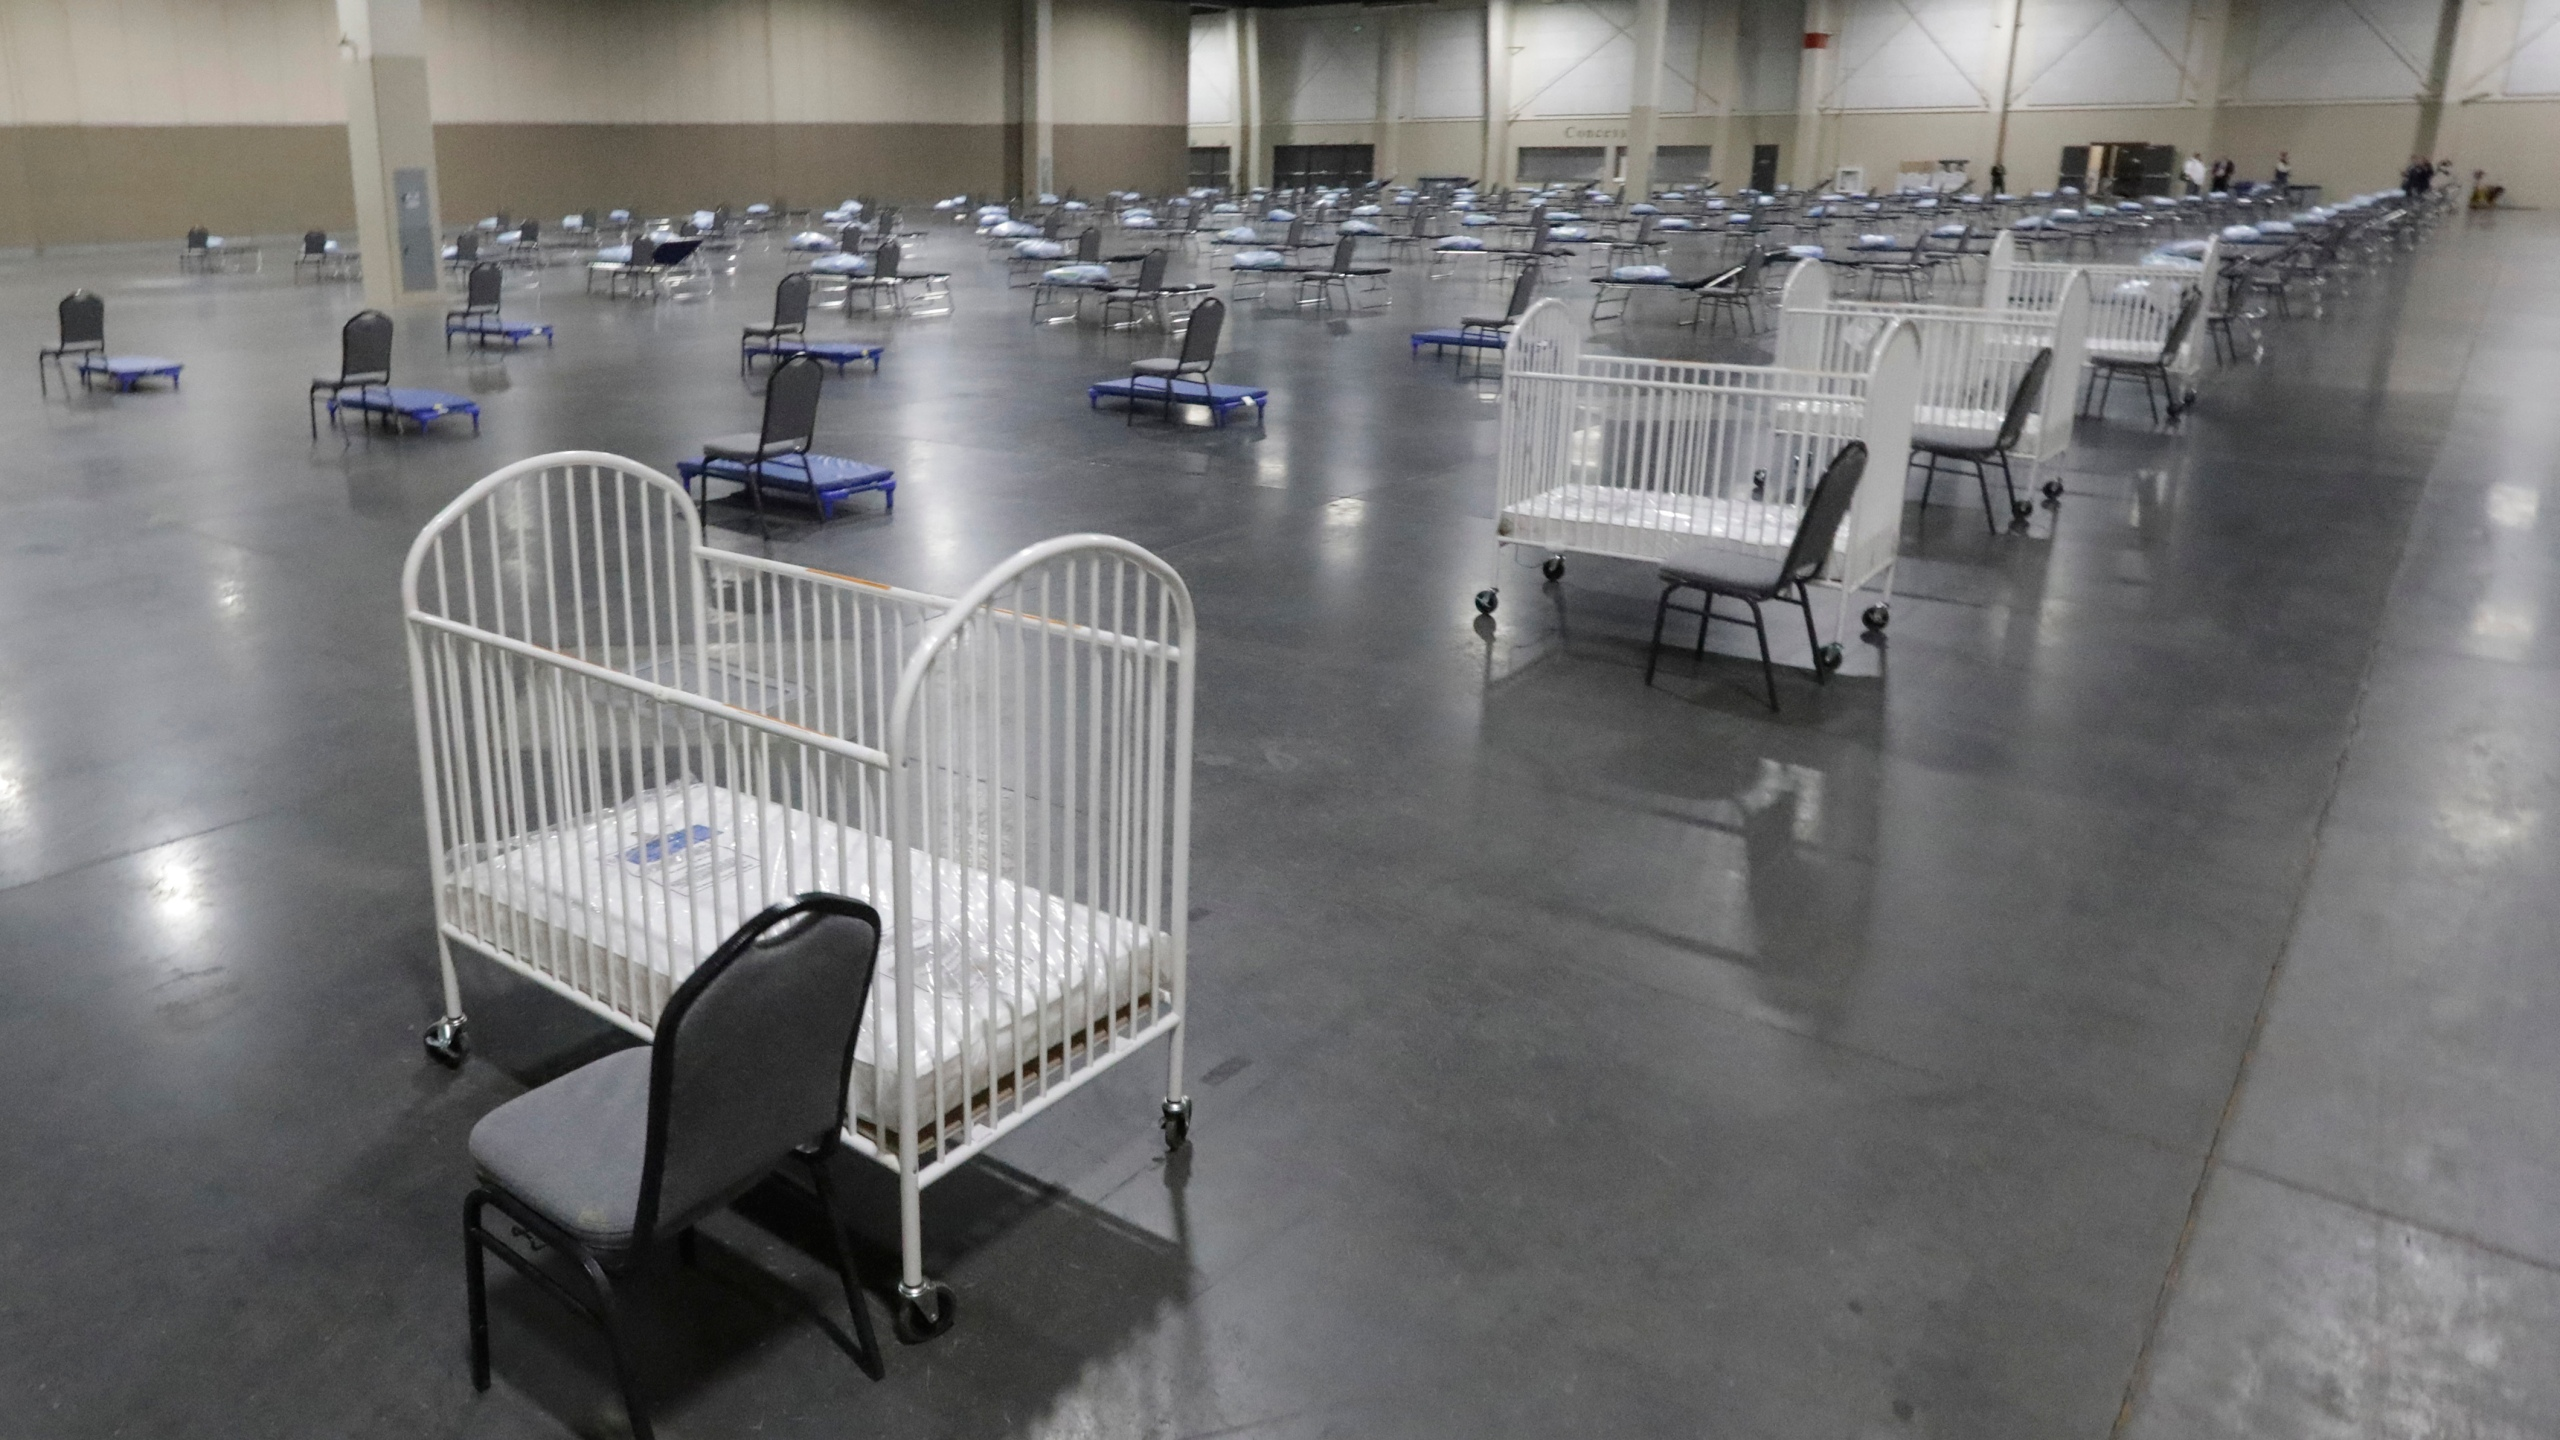 In this April 6, 2020, file photo, cots and cribs are arranged at the Mountain America Expo Center in Sandy, Utah, as an alternate care site or for hospital overflow amid the COVID-19 pandemic.(AP Photo/Rick Bowmer)